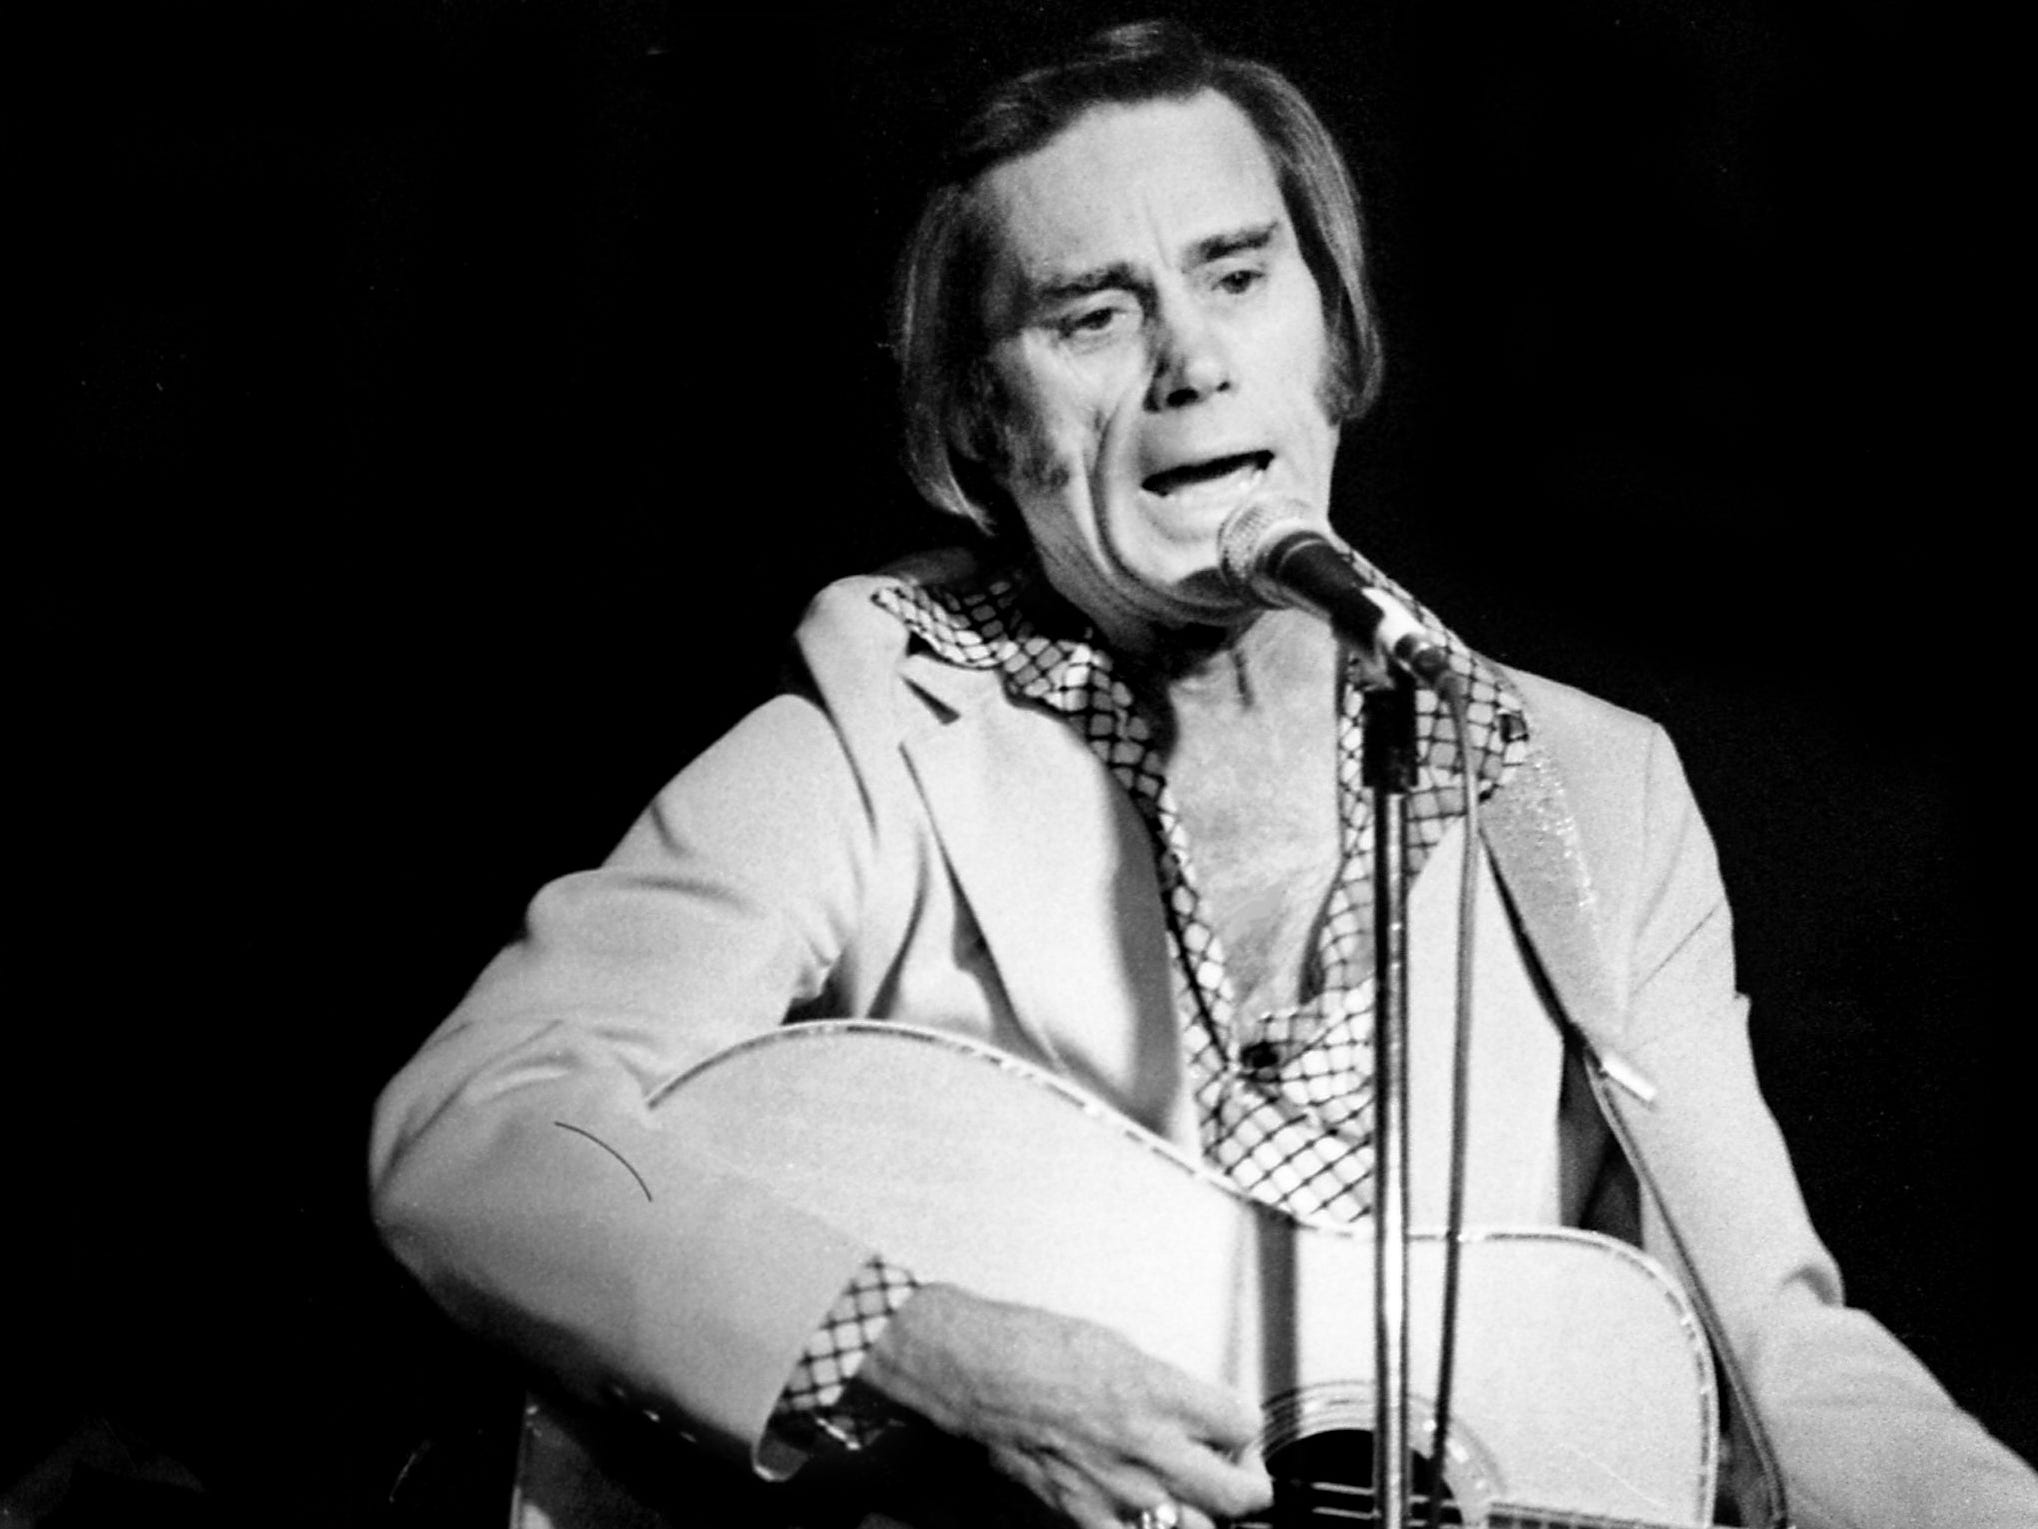 George Jones is performing one of his hits at his widely-anticipated comeback appearance at the Exit/In on April 6, 1979. The Possum, who had to declared bankruptcy because of $1.5 million in debts, has troubled years of missed concert dates, and wide-spread talk of a drinking problem has soured his once-brilliant career.